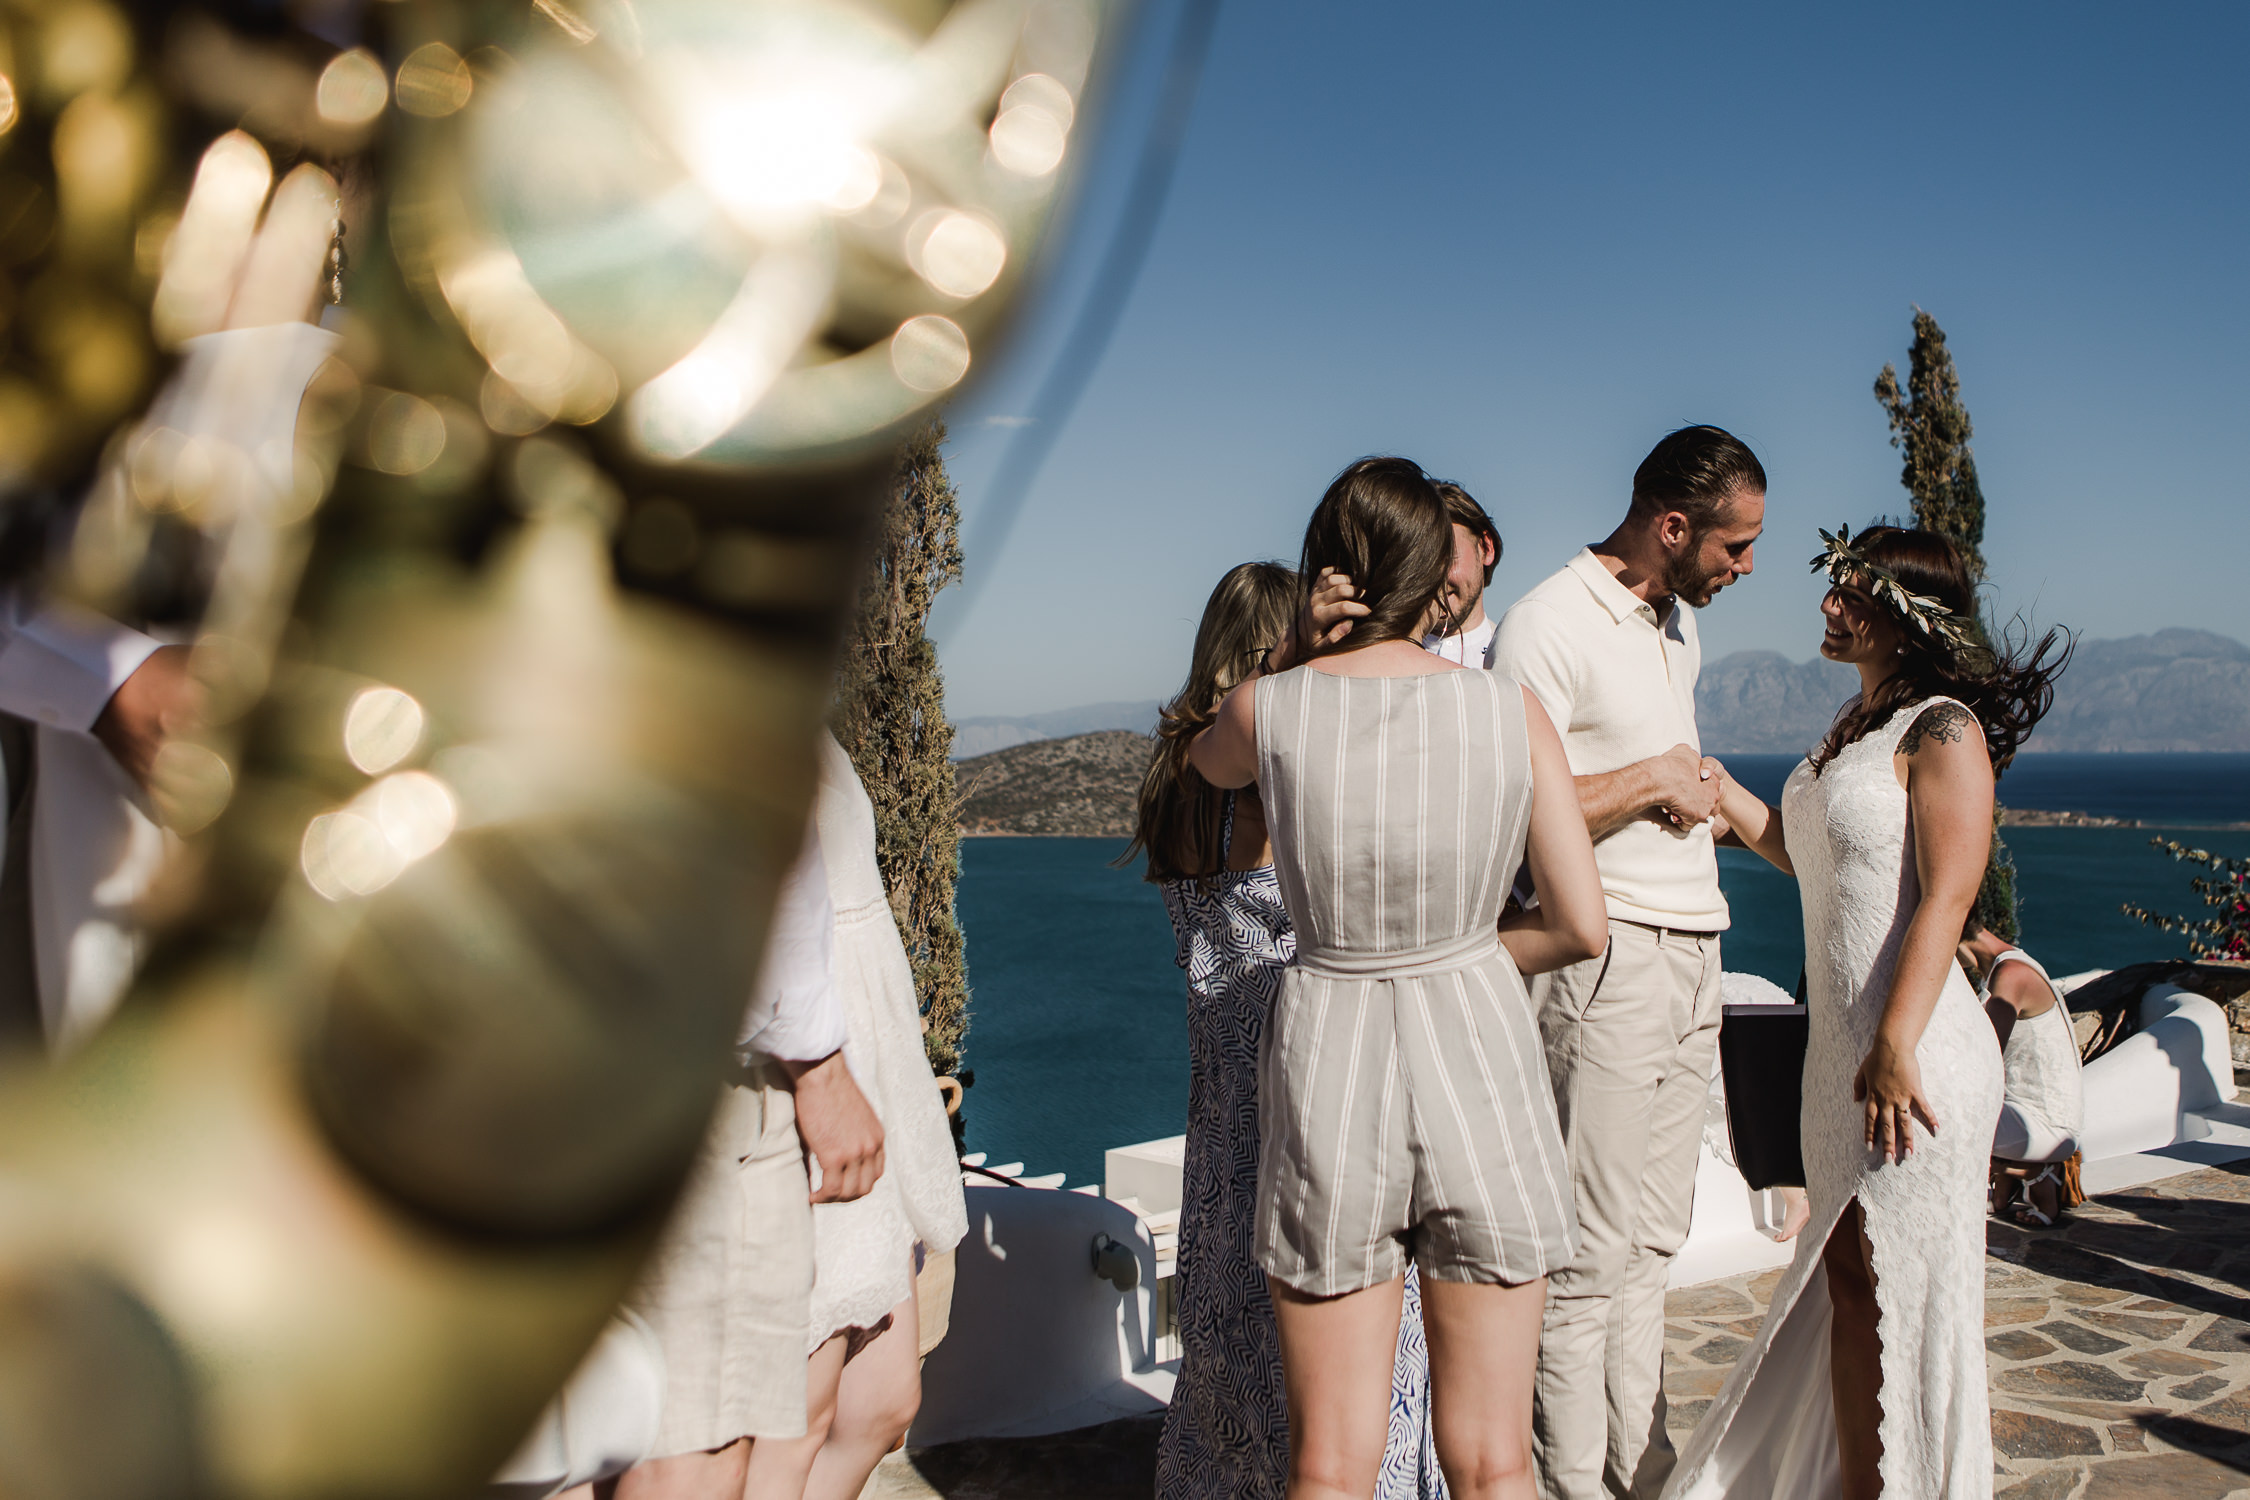 Fotomagoria - Elounda - Crete - Greece Wedding 210.jpg